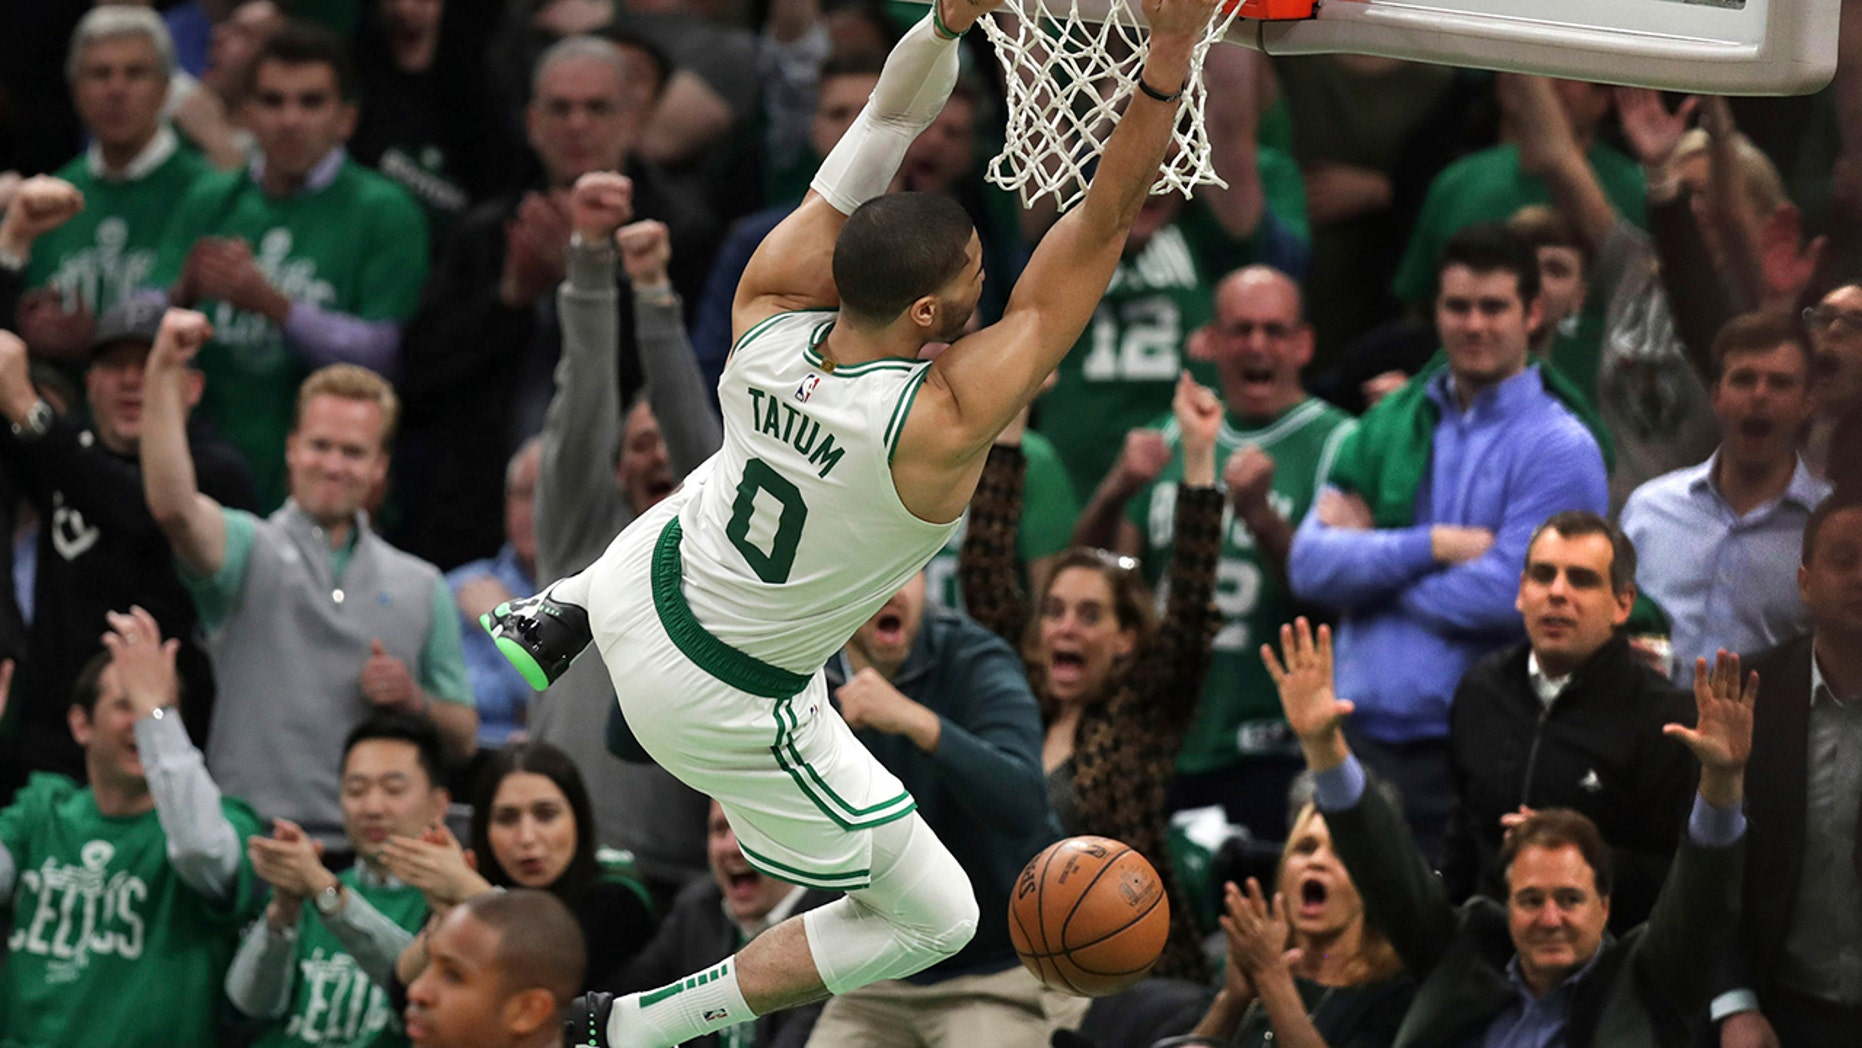 Boston Celtics forward Jayson Tatum (0) hangs on the rim after slamming a dunk against the Indiana Pacers in the final minute of the fourth quarter of Game 2 of an NBA basketball first-round playoff series, Wednesday, April 17, 2019, in Boston. The Celtics won 99-91. (AP Photo/Charles Krupa)